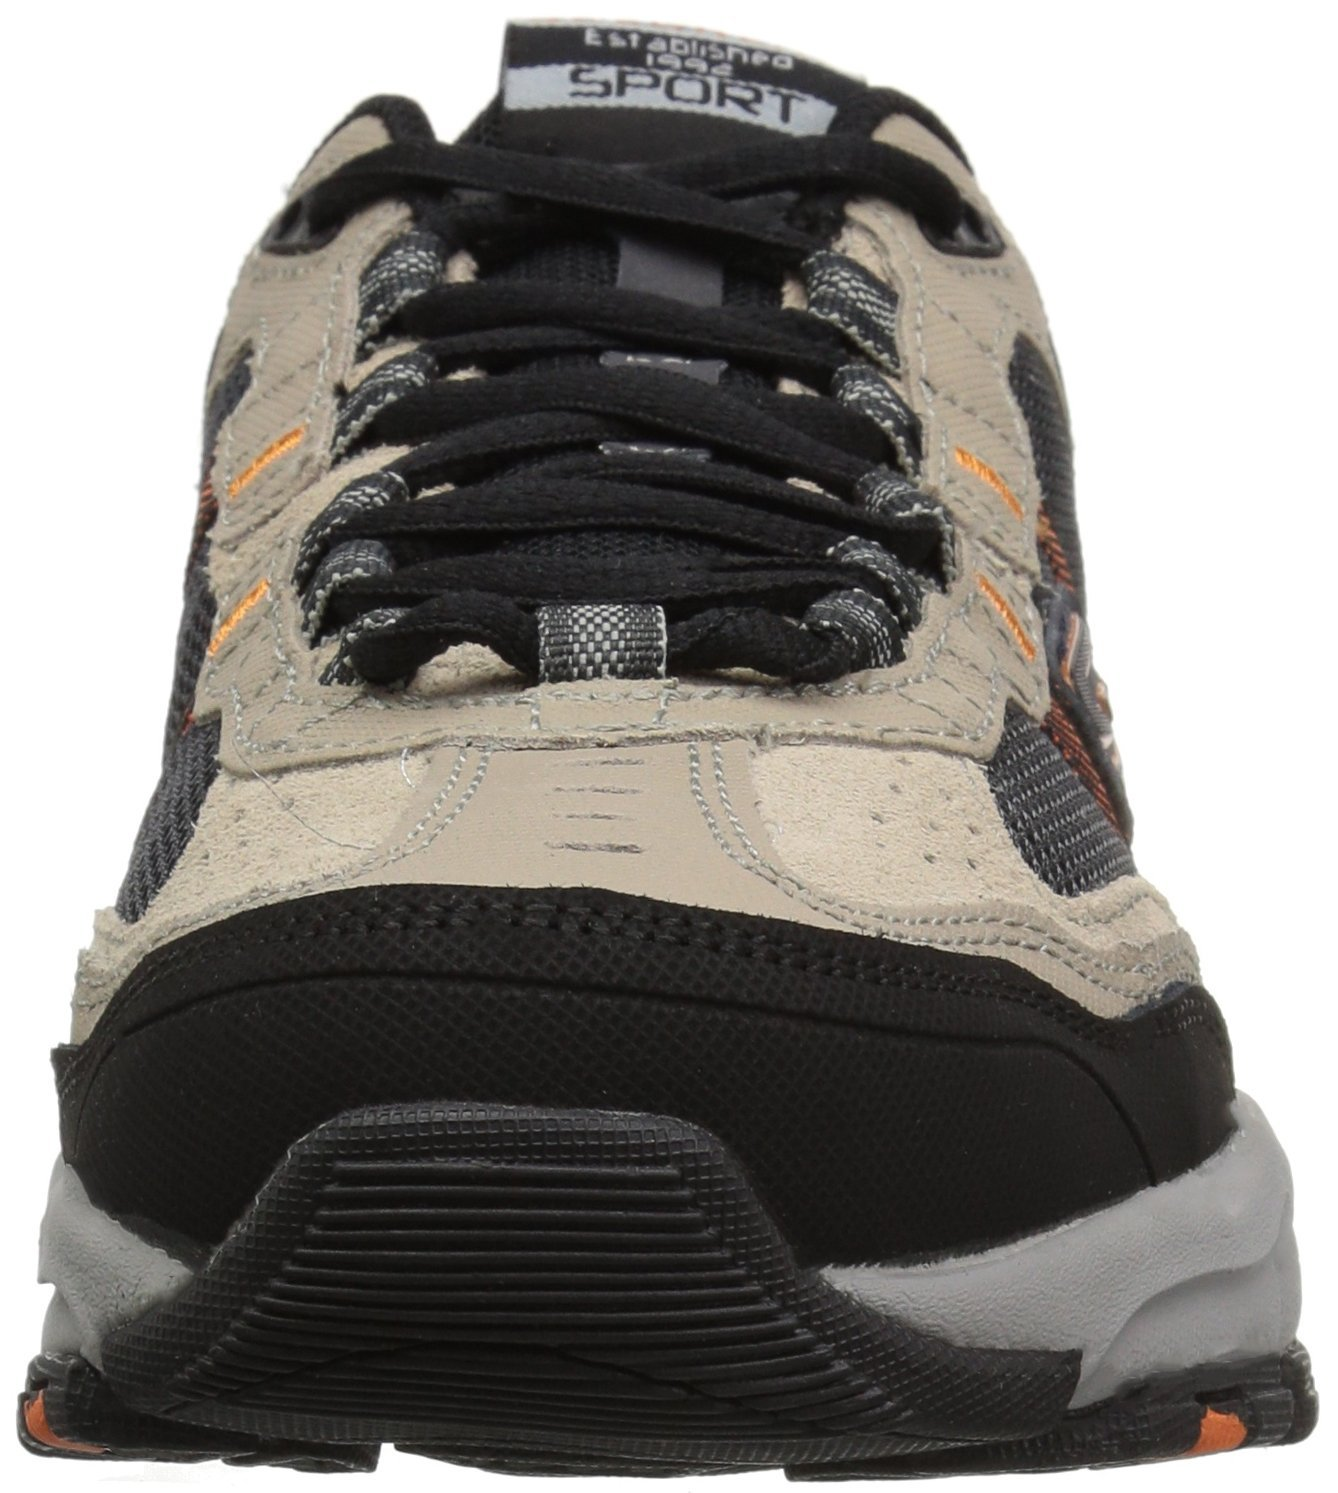 Skechers Sport Men's Vigor 2.0 Trait Memory Foam Sneaker, Taupe/Black, 7 M US by Skechers (Image #4)